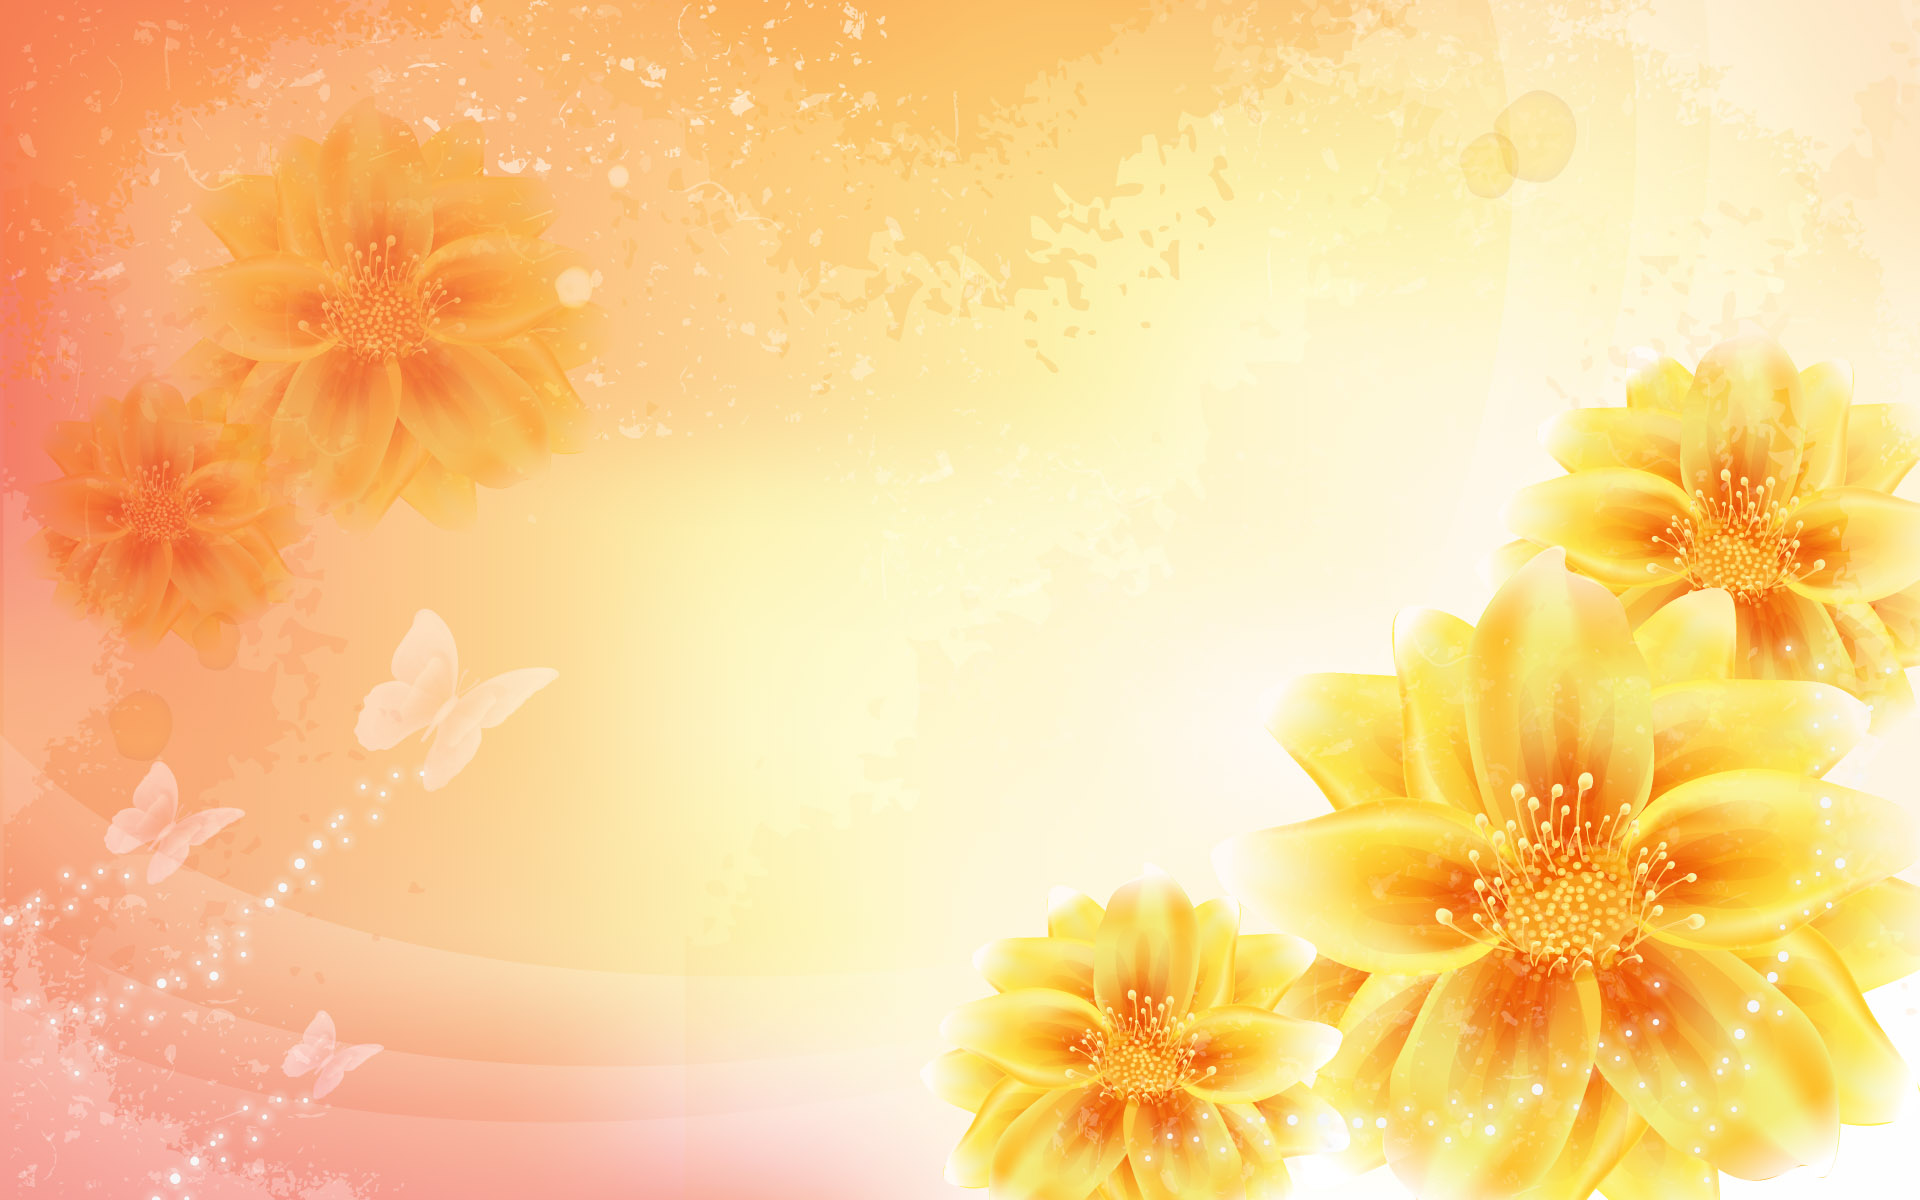 Colorful Flower Backgrounds